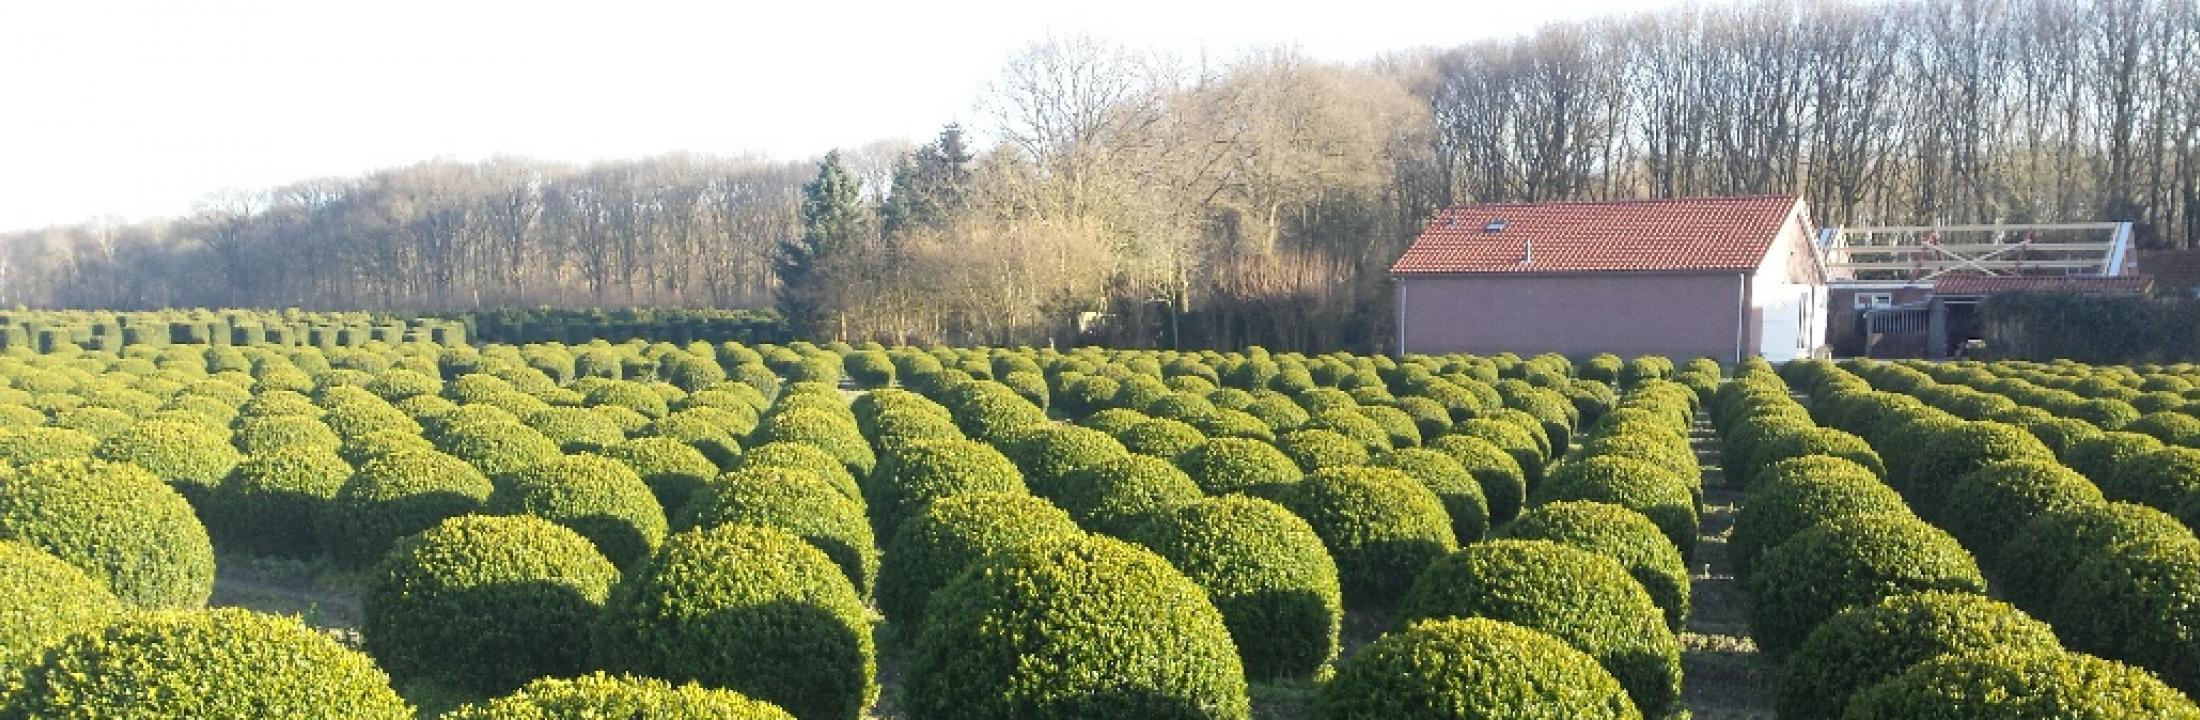 Buxus sempervirens ball - Ron Le Poole - Holland